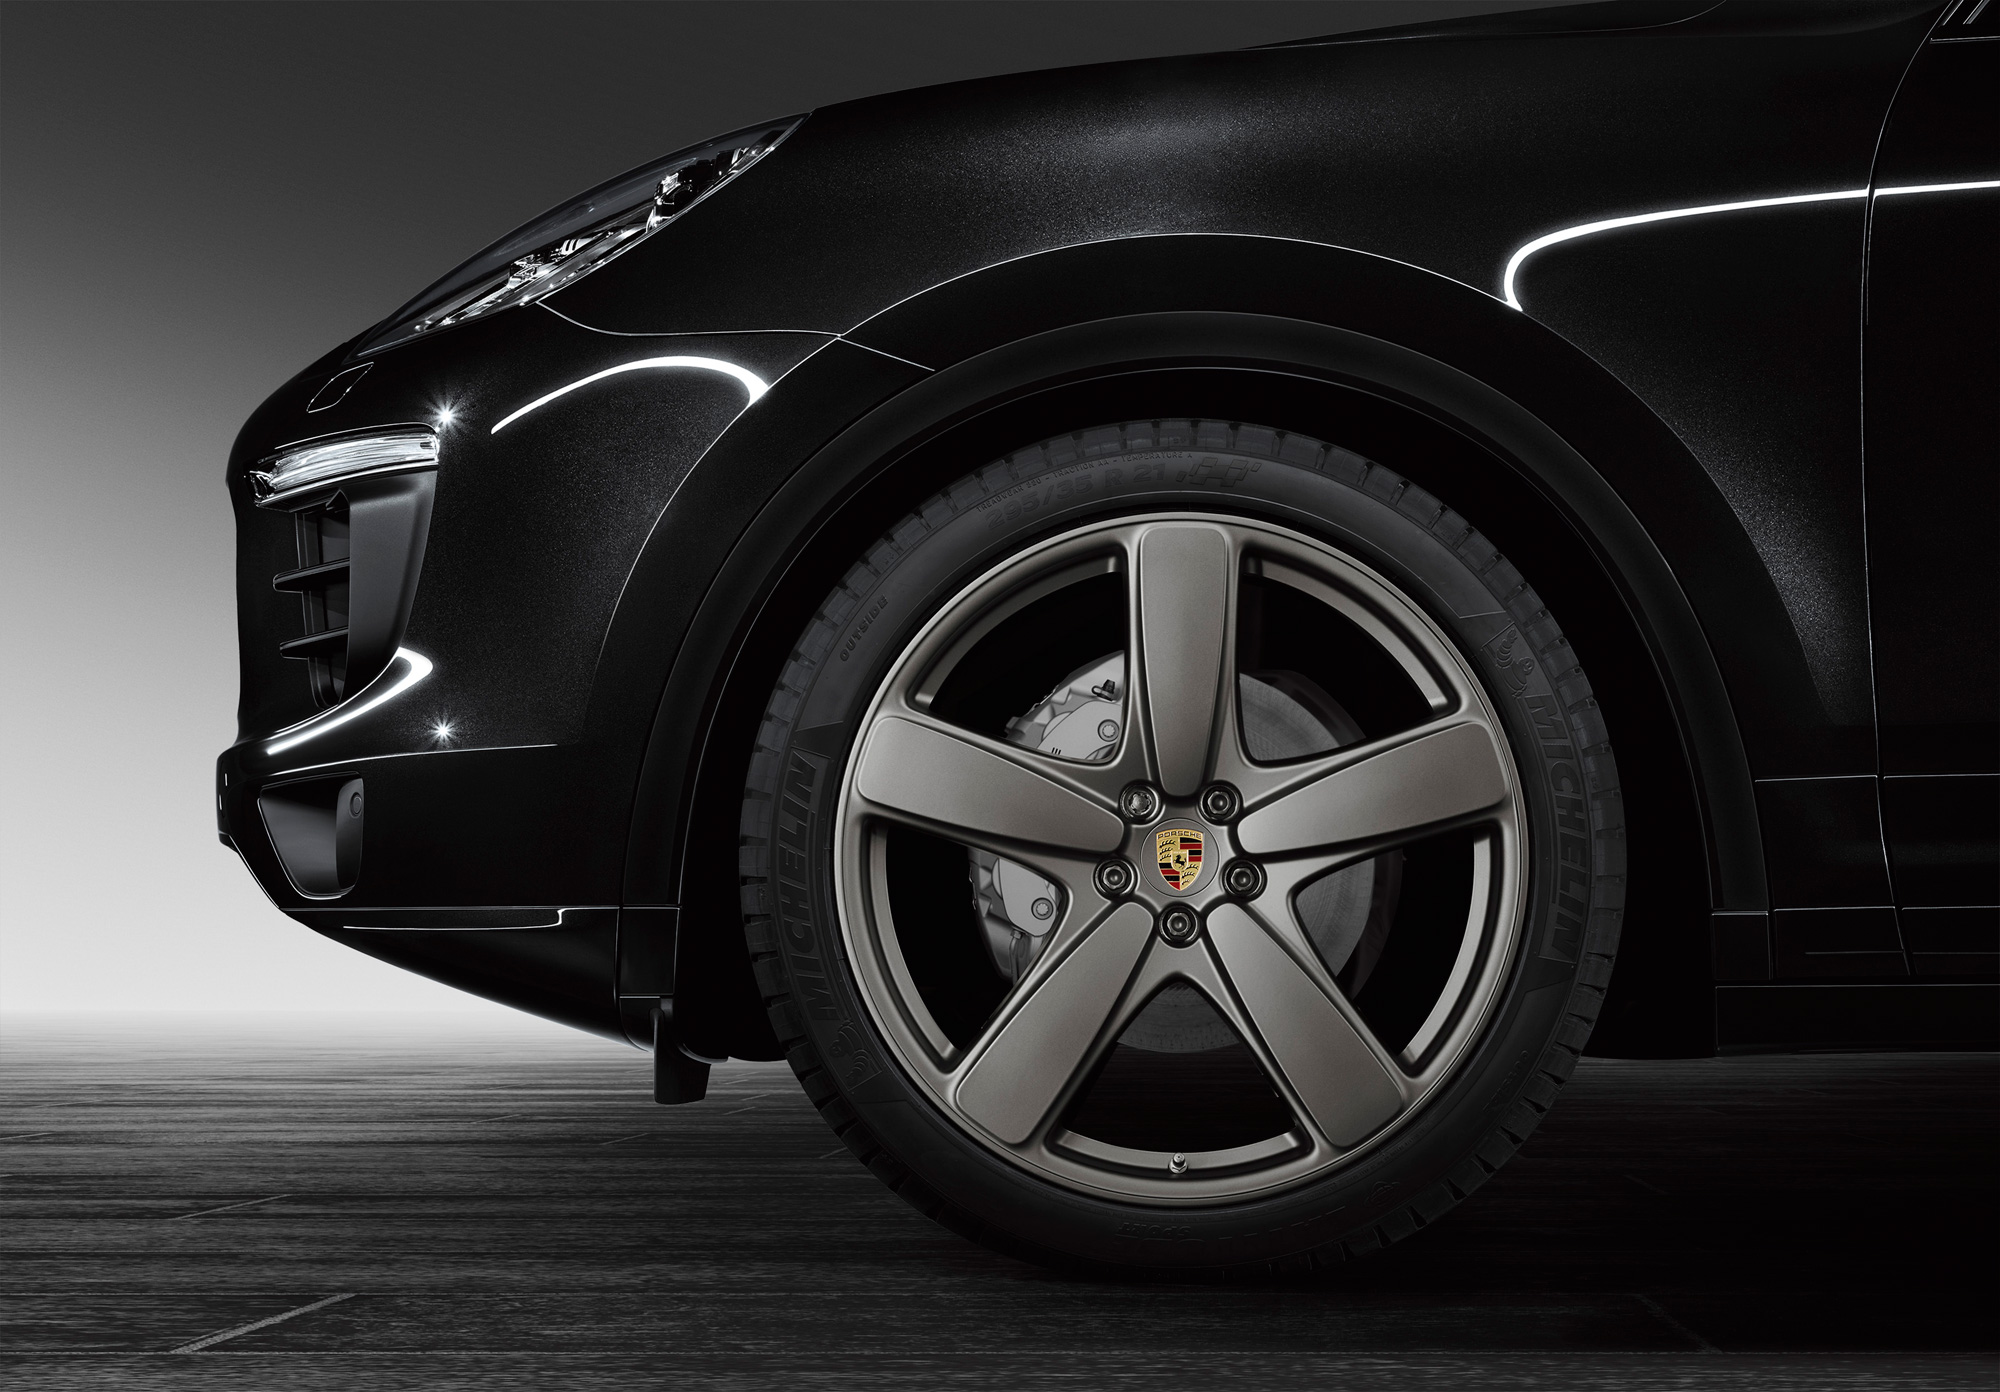 details for skate shoes amazing price Porsche Cayenne, Macan Get New Accessories » AutoGuide.com News